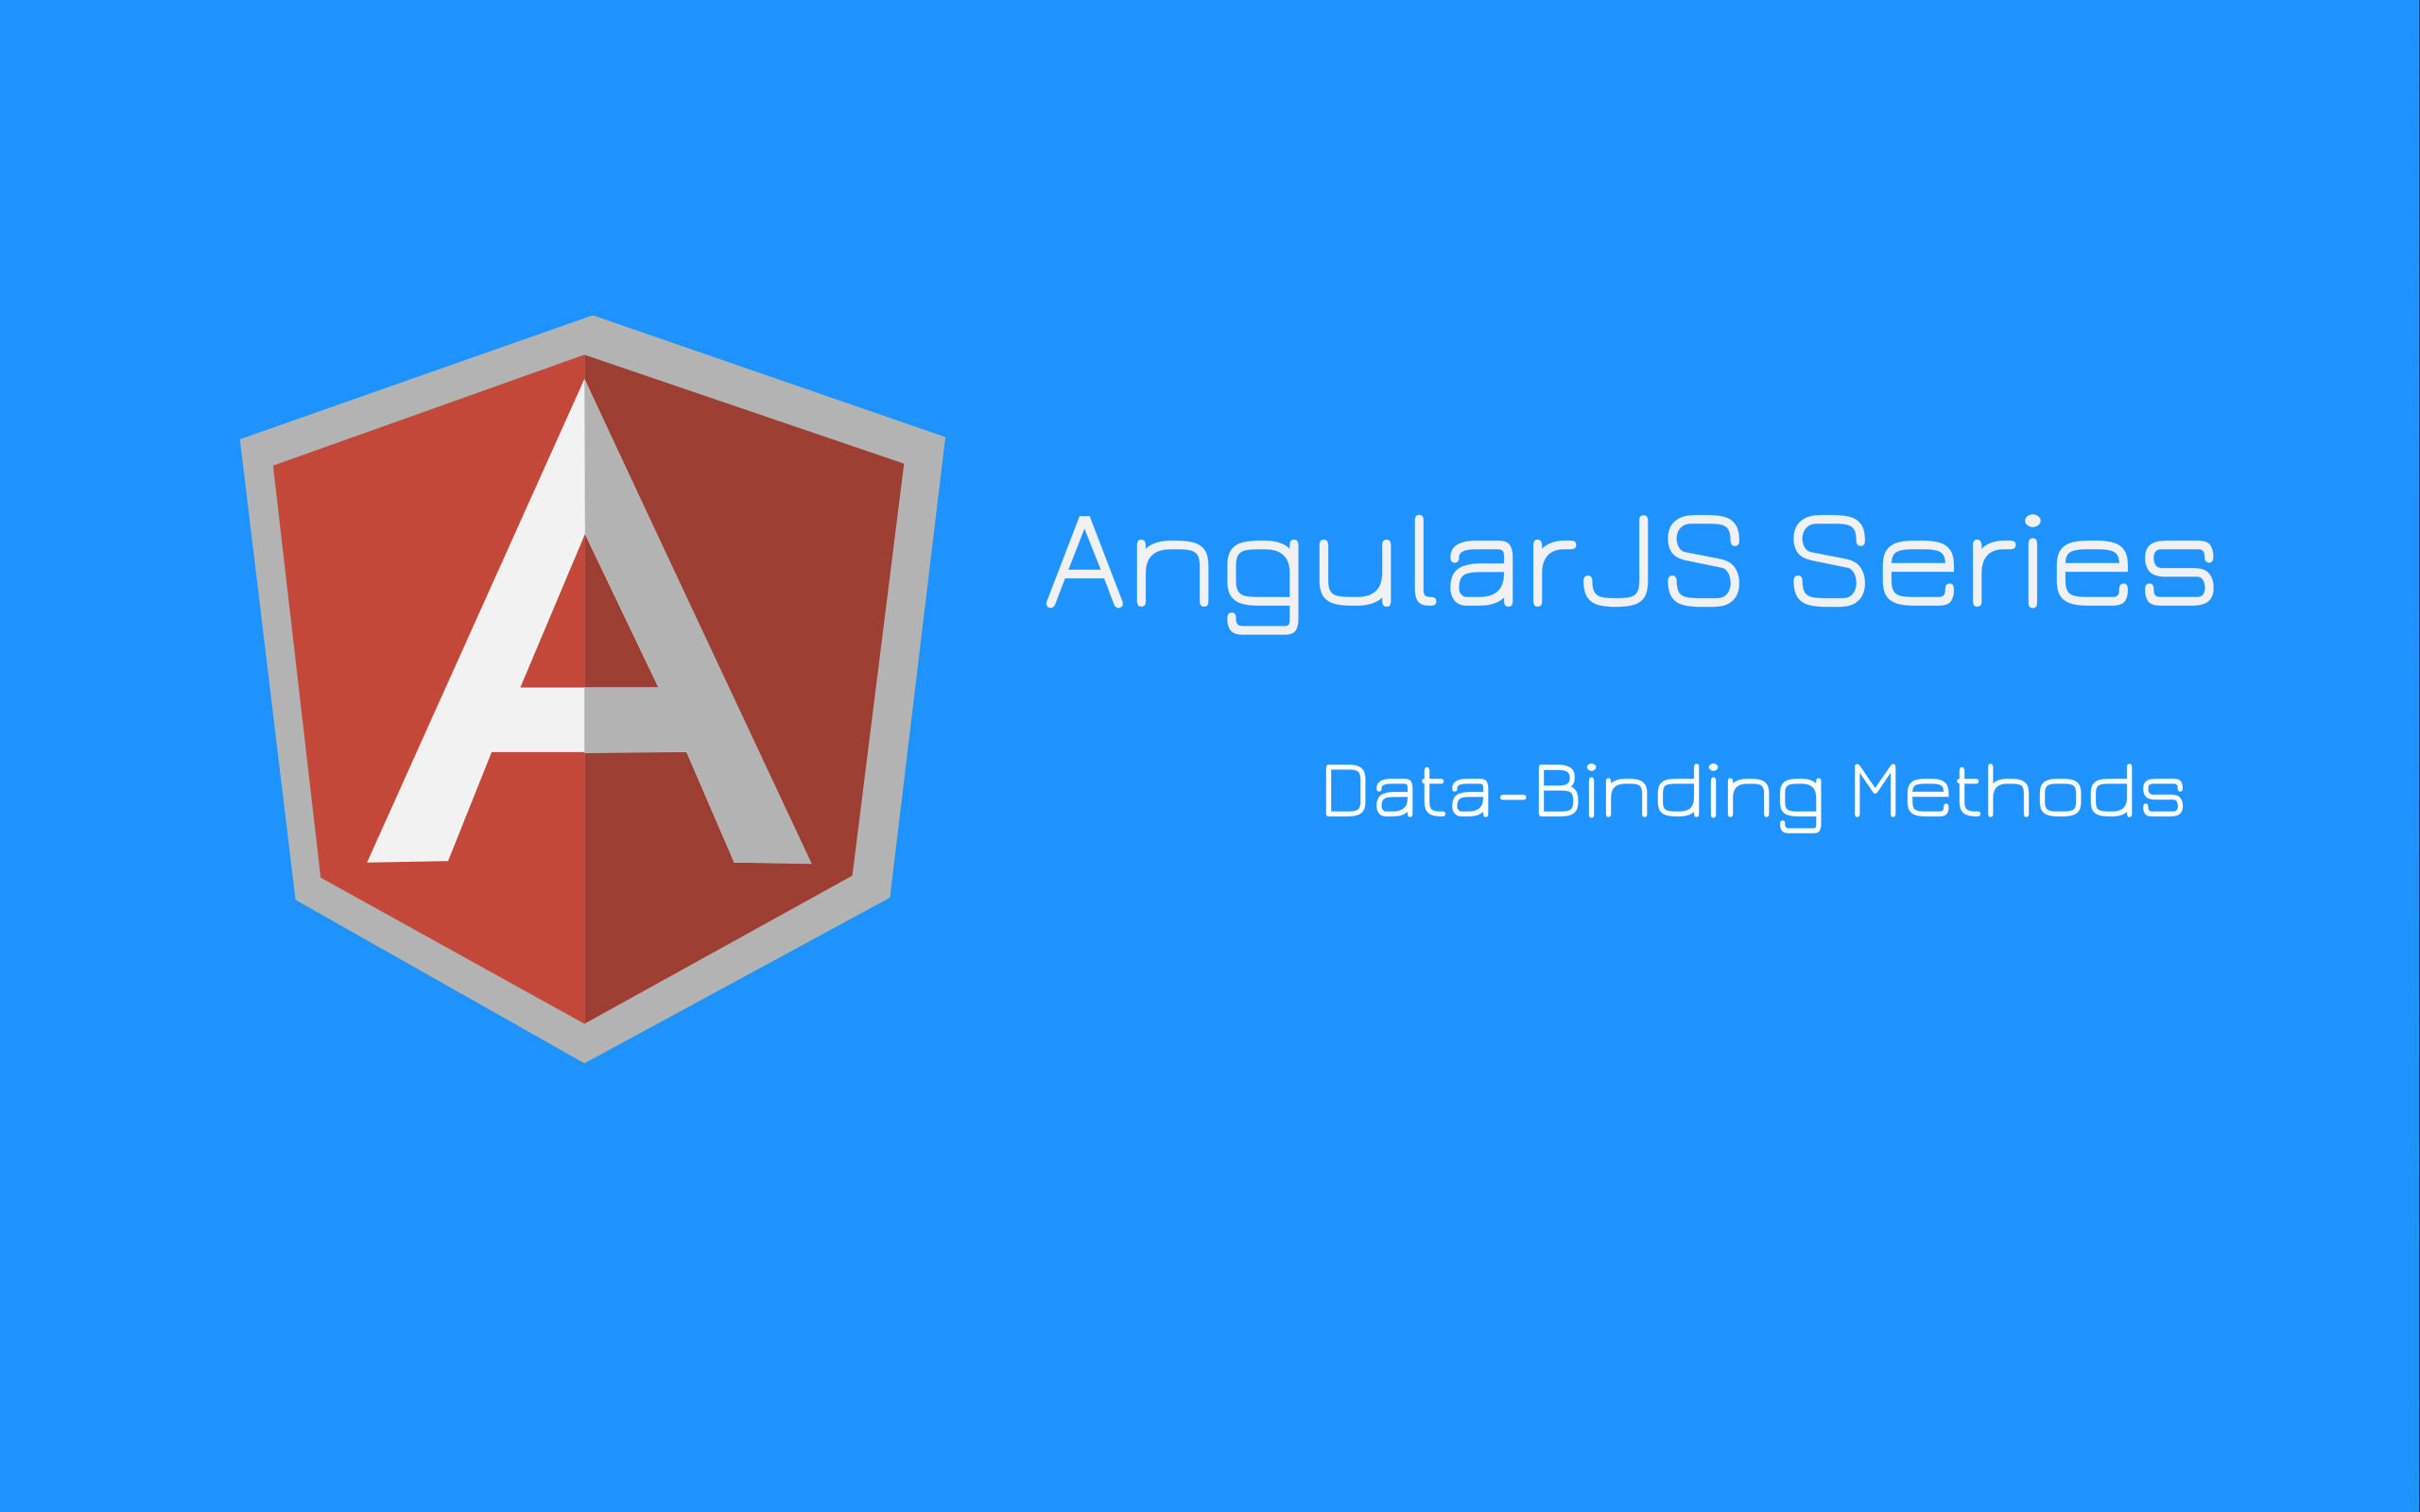 Data-binding methods in AngularJS | Valuebound